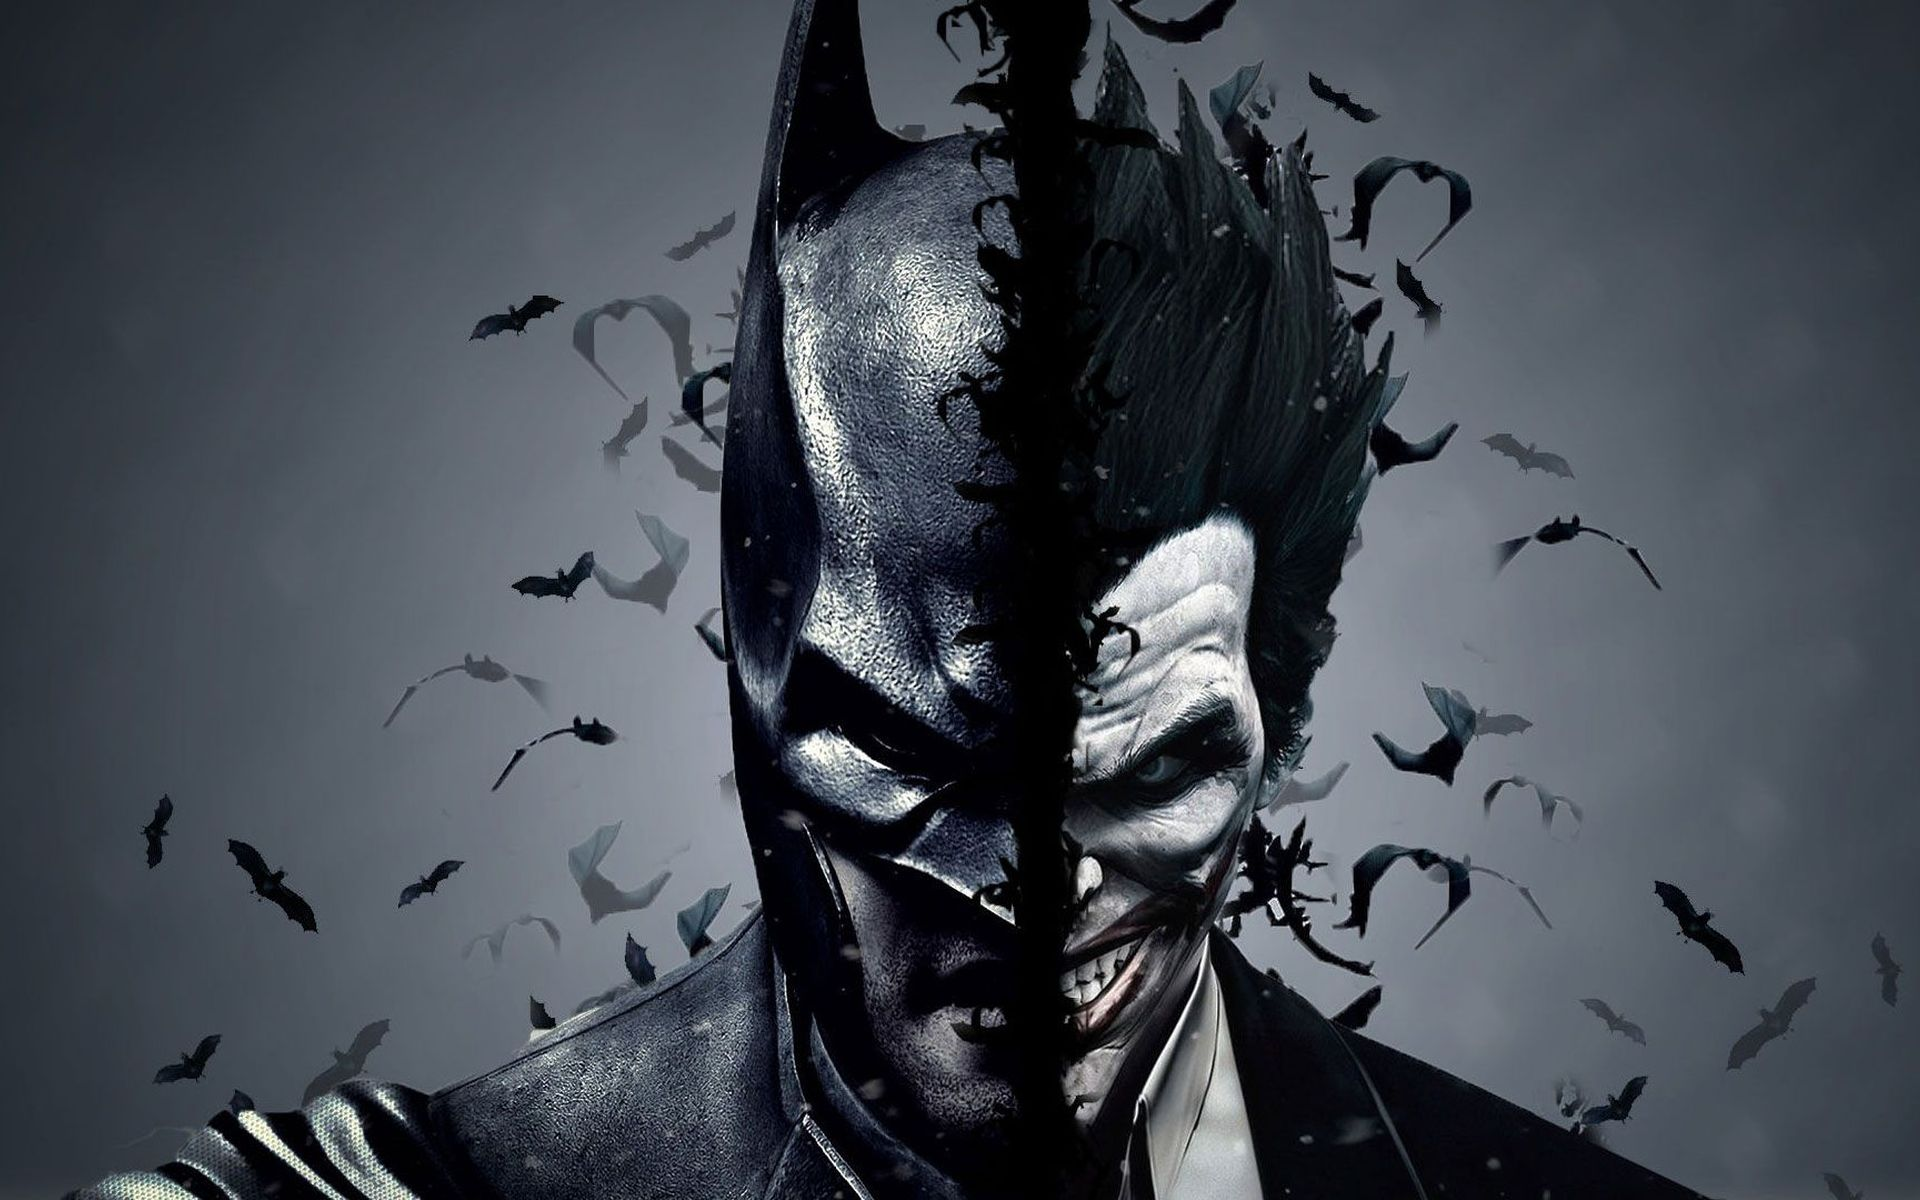 Batman best wallpapers hd hd wallpapers hd backgroundstumblr batman best wallpapers hd voltagebd Image collections